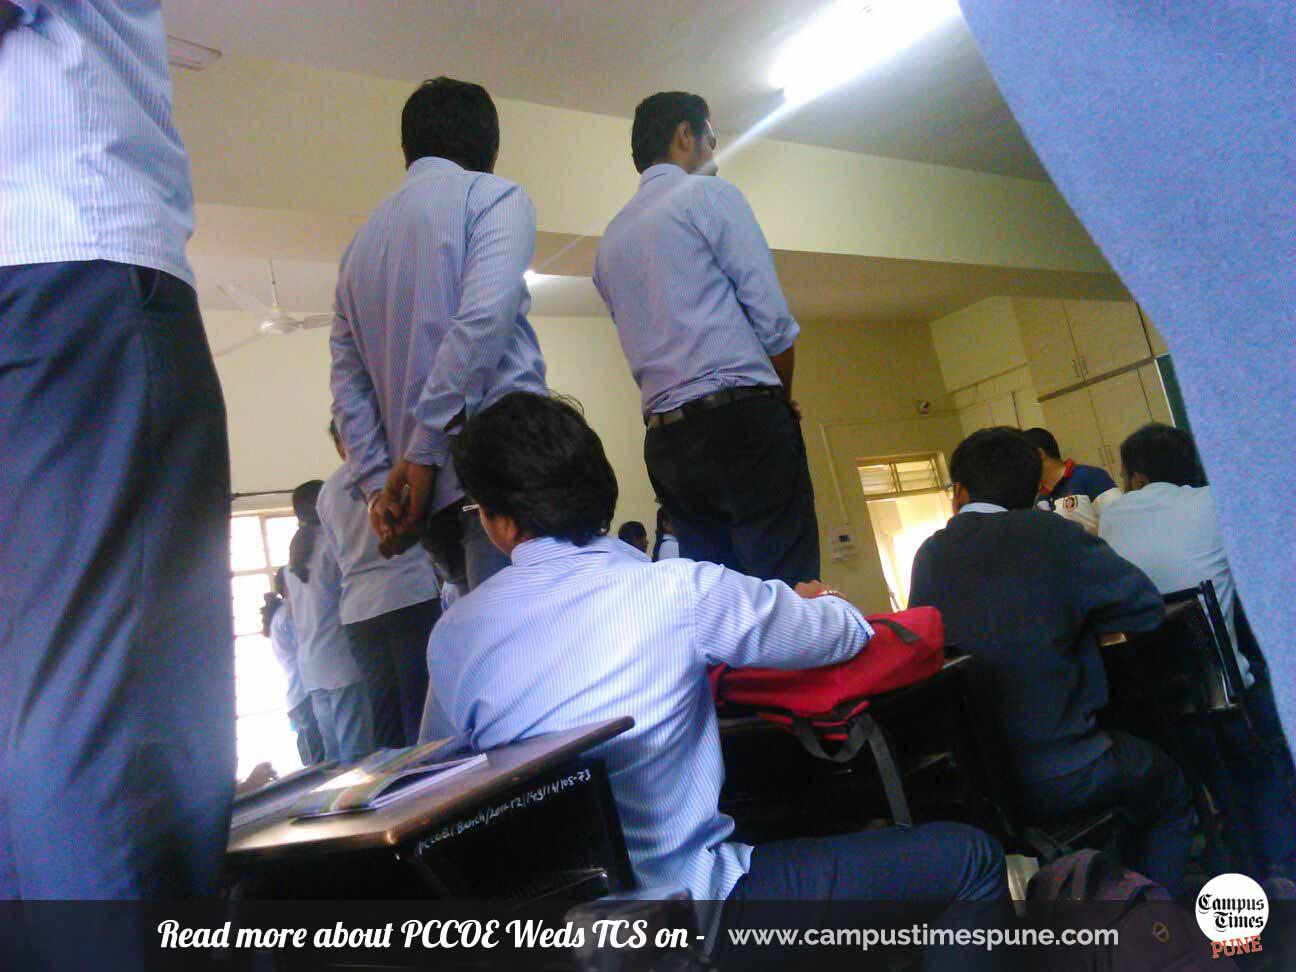 TCS-aptitude-Test-failed-students-punished-in-classroom-PCCOE-Pune